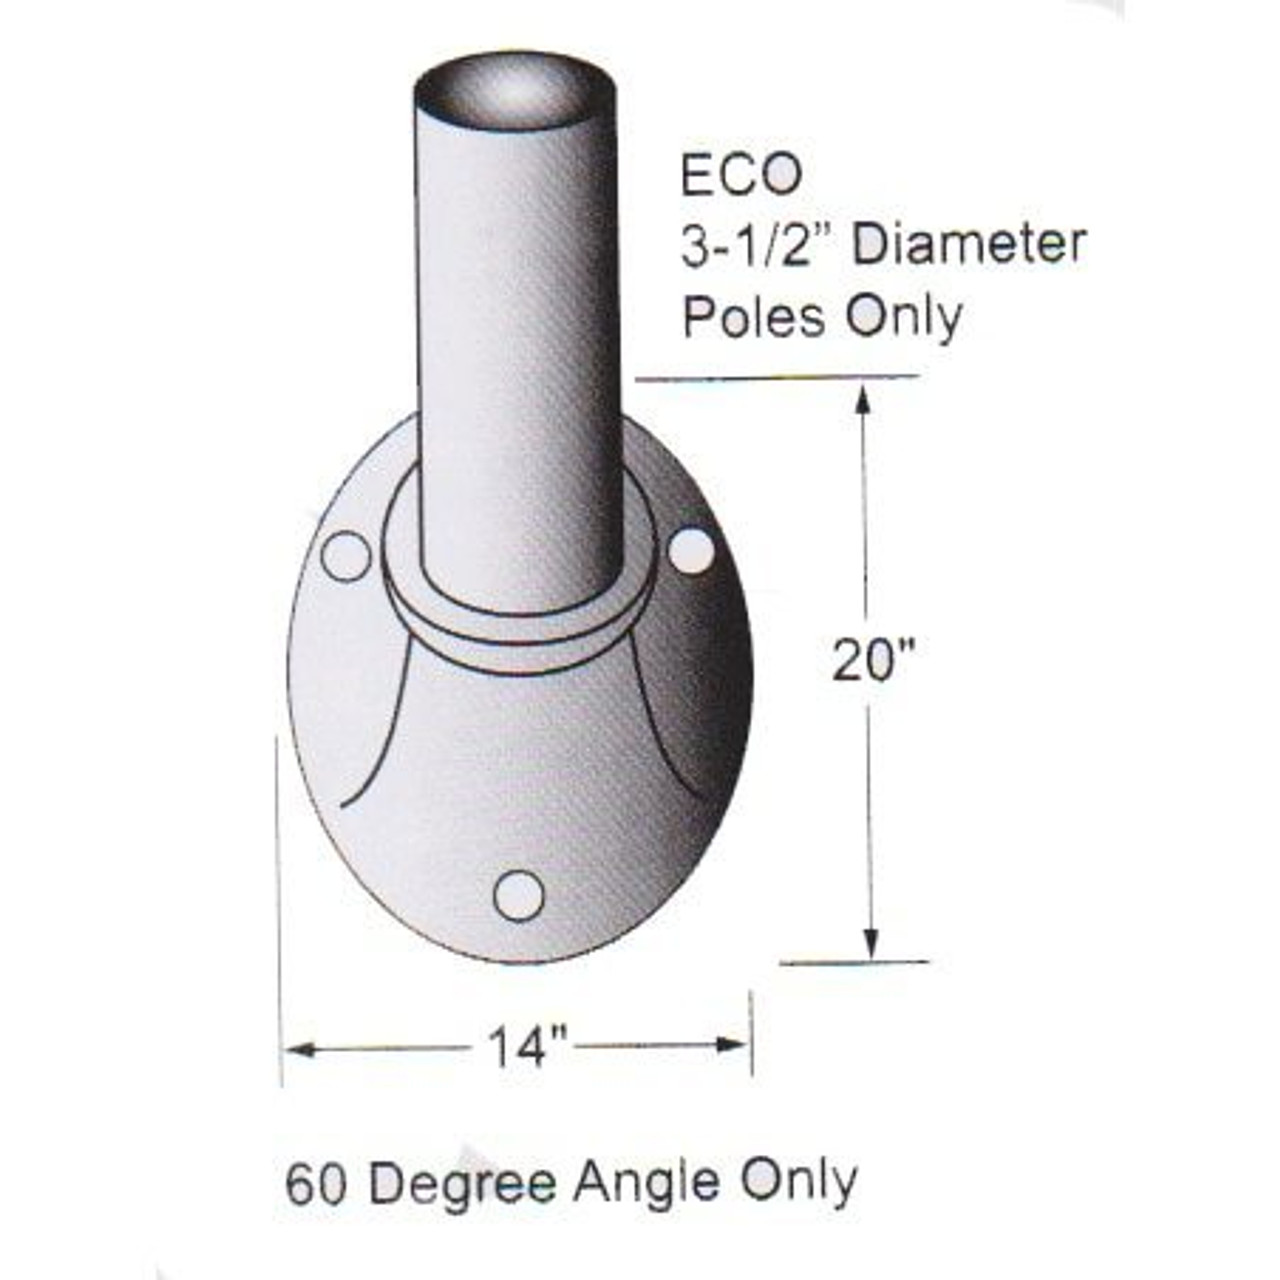 12 Tapered Wall Mounted Flagpole ECO12